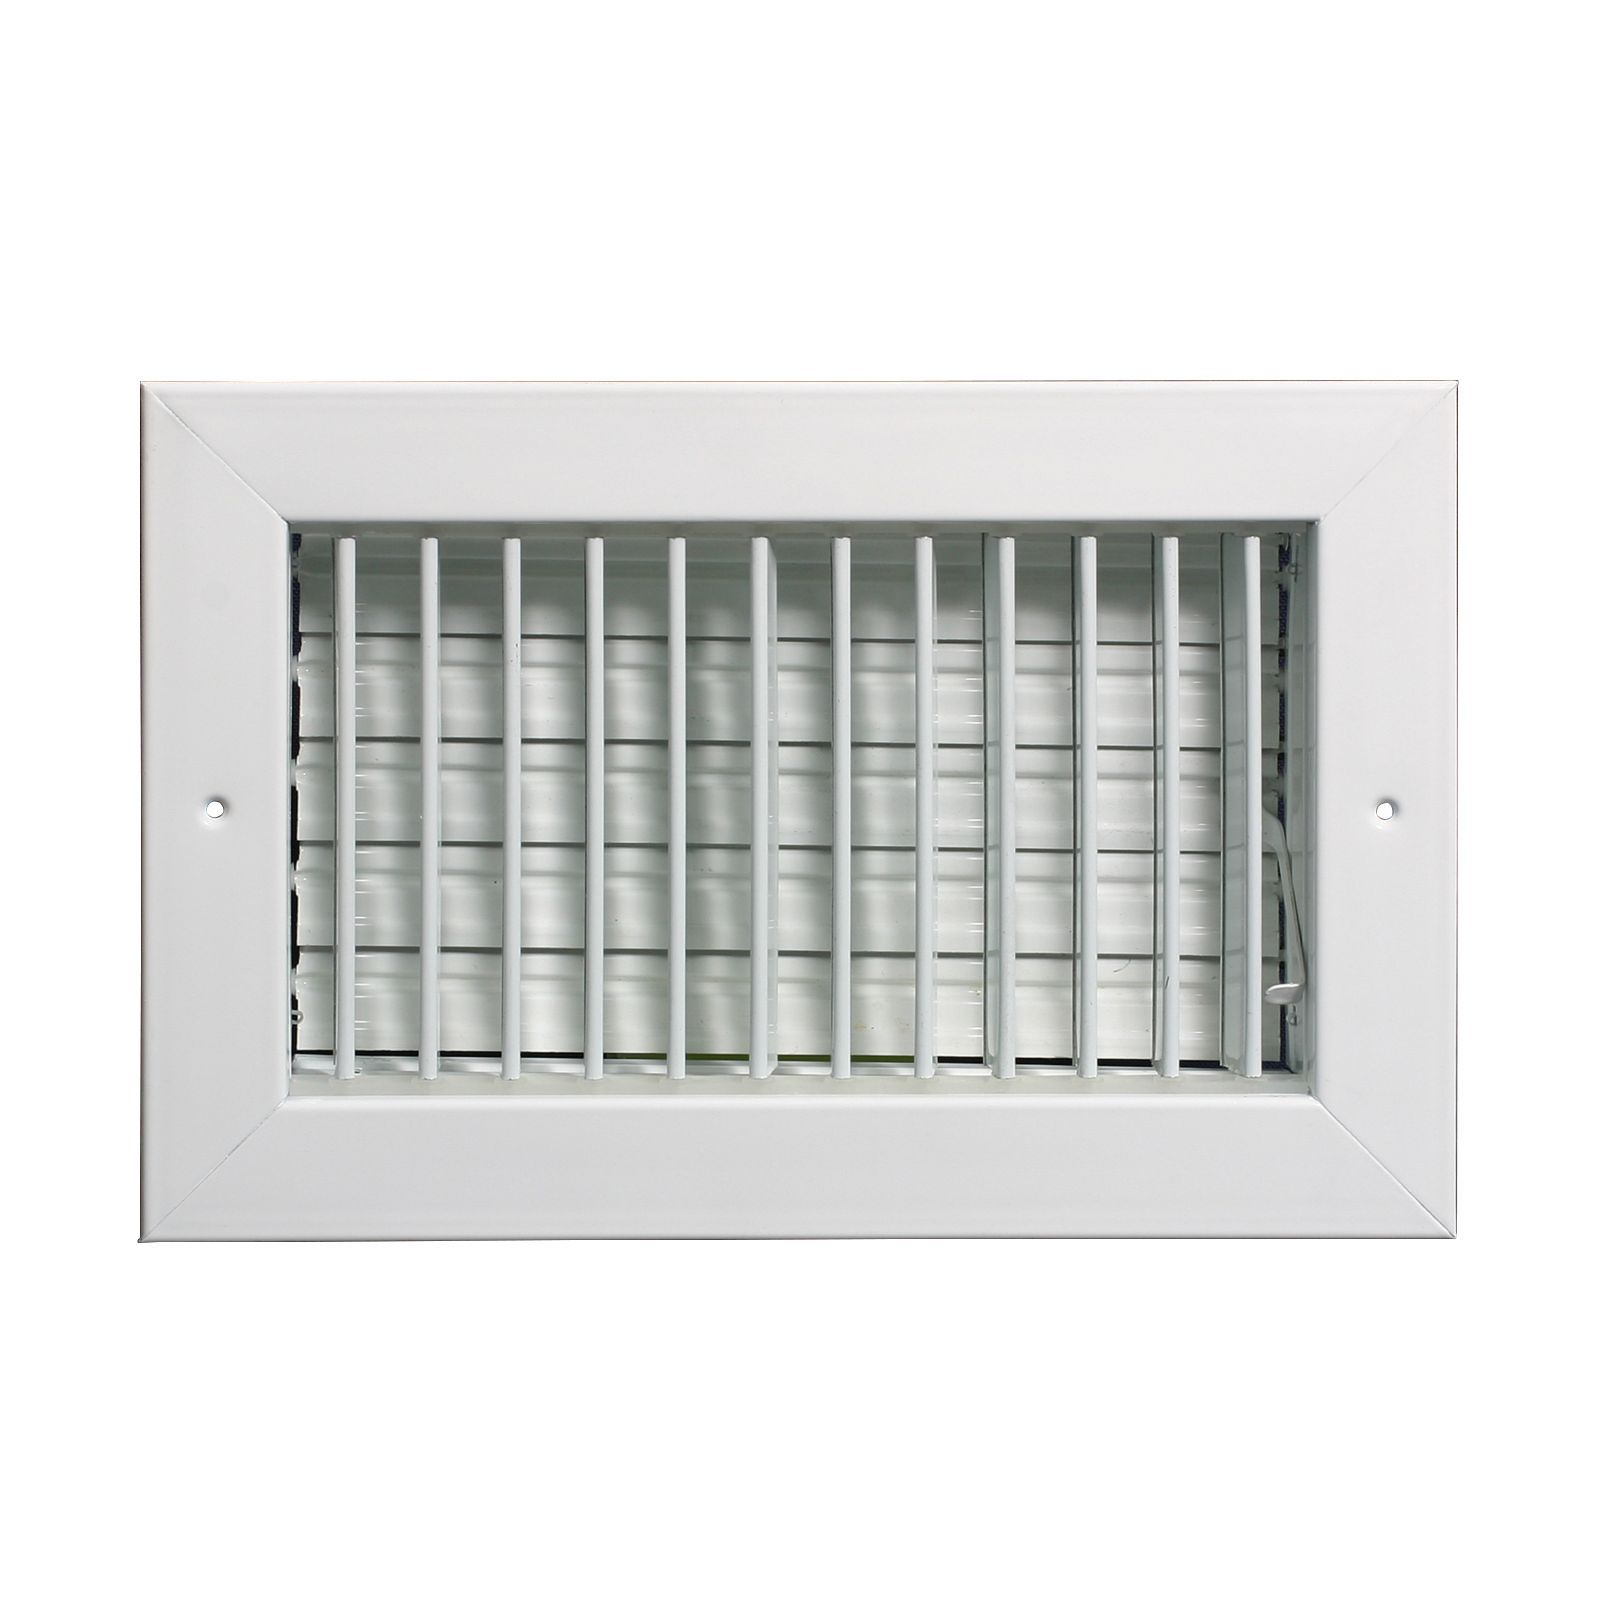 "Grille Tech VM1212 - Aluminum Vertical Blade Sidewall Register , Multi-Shutter Damper 12"" X 12"" White"